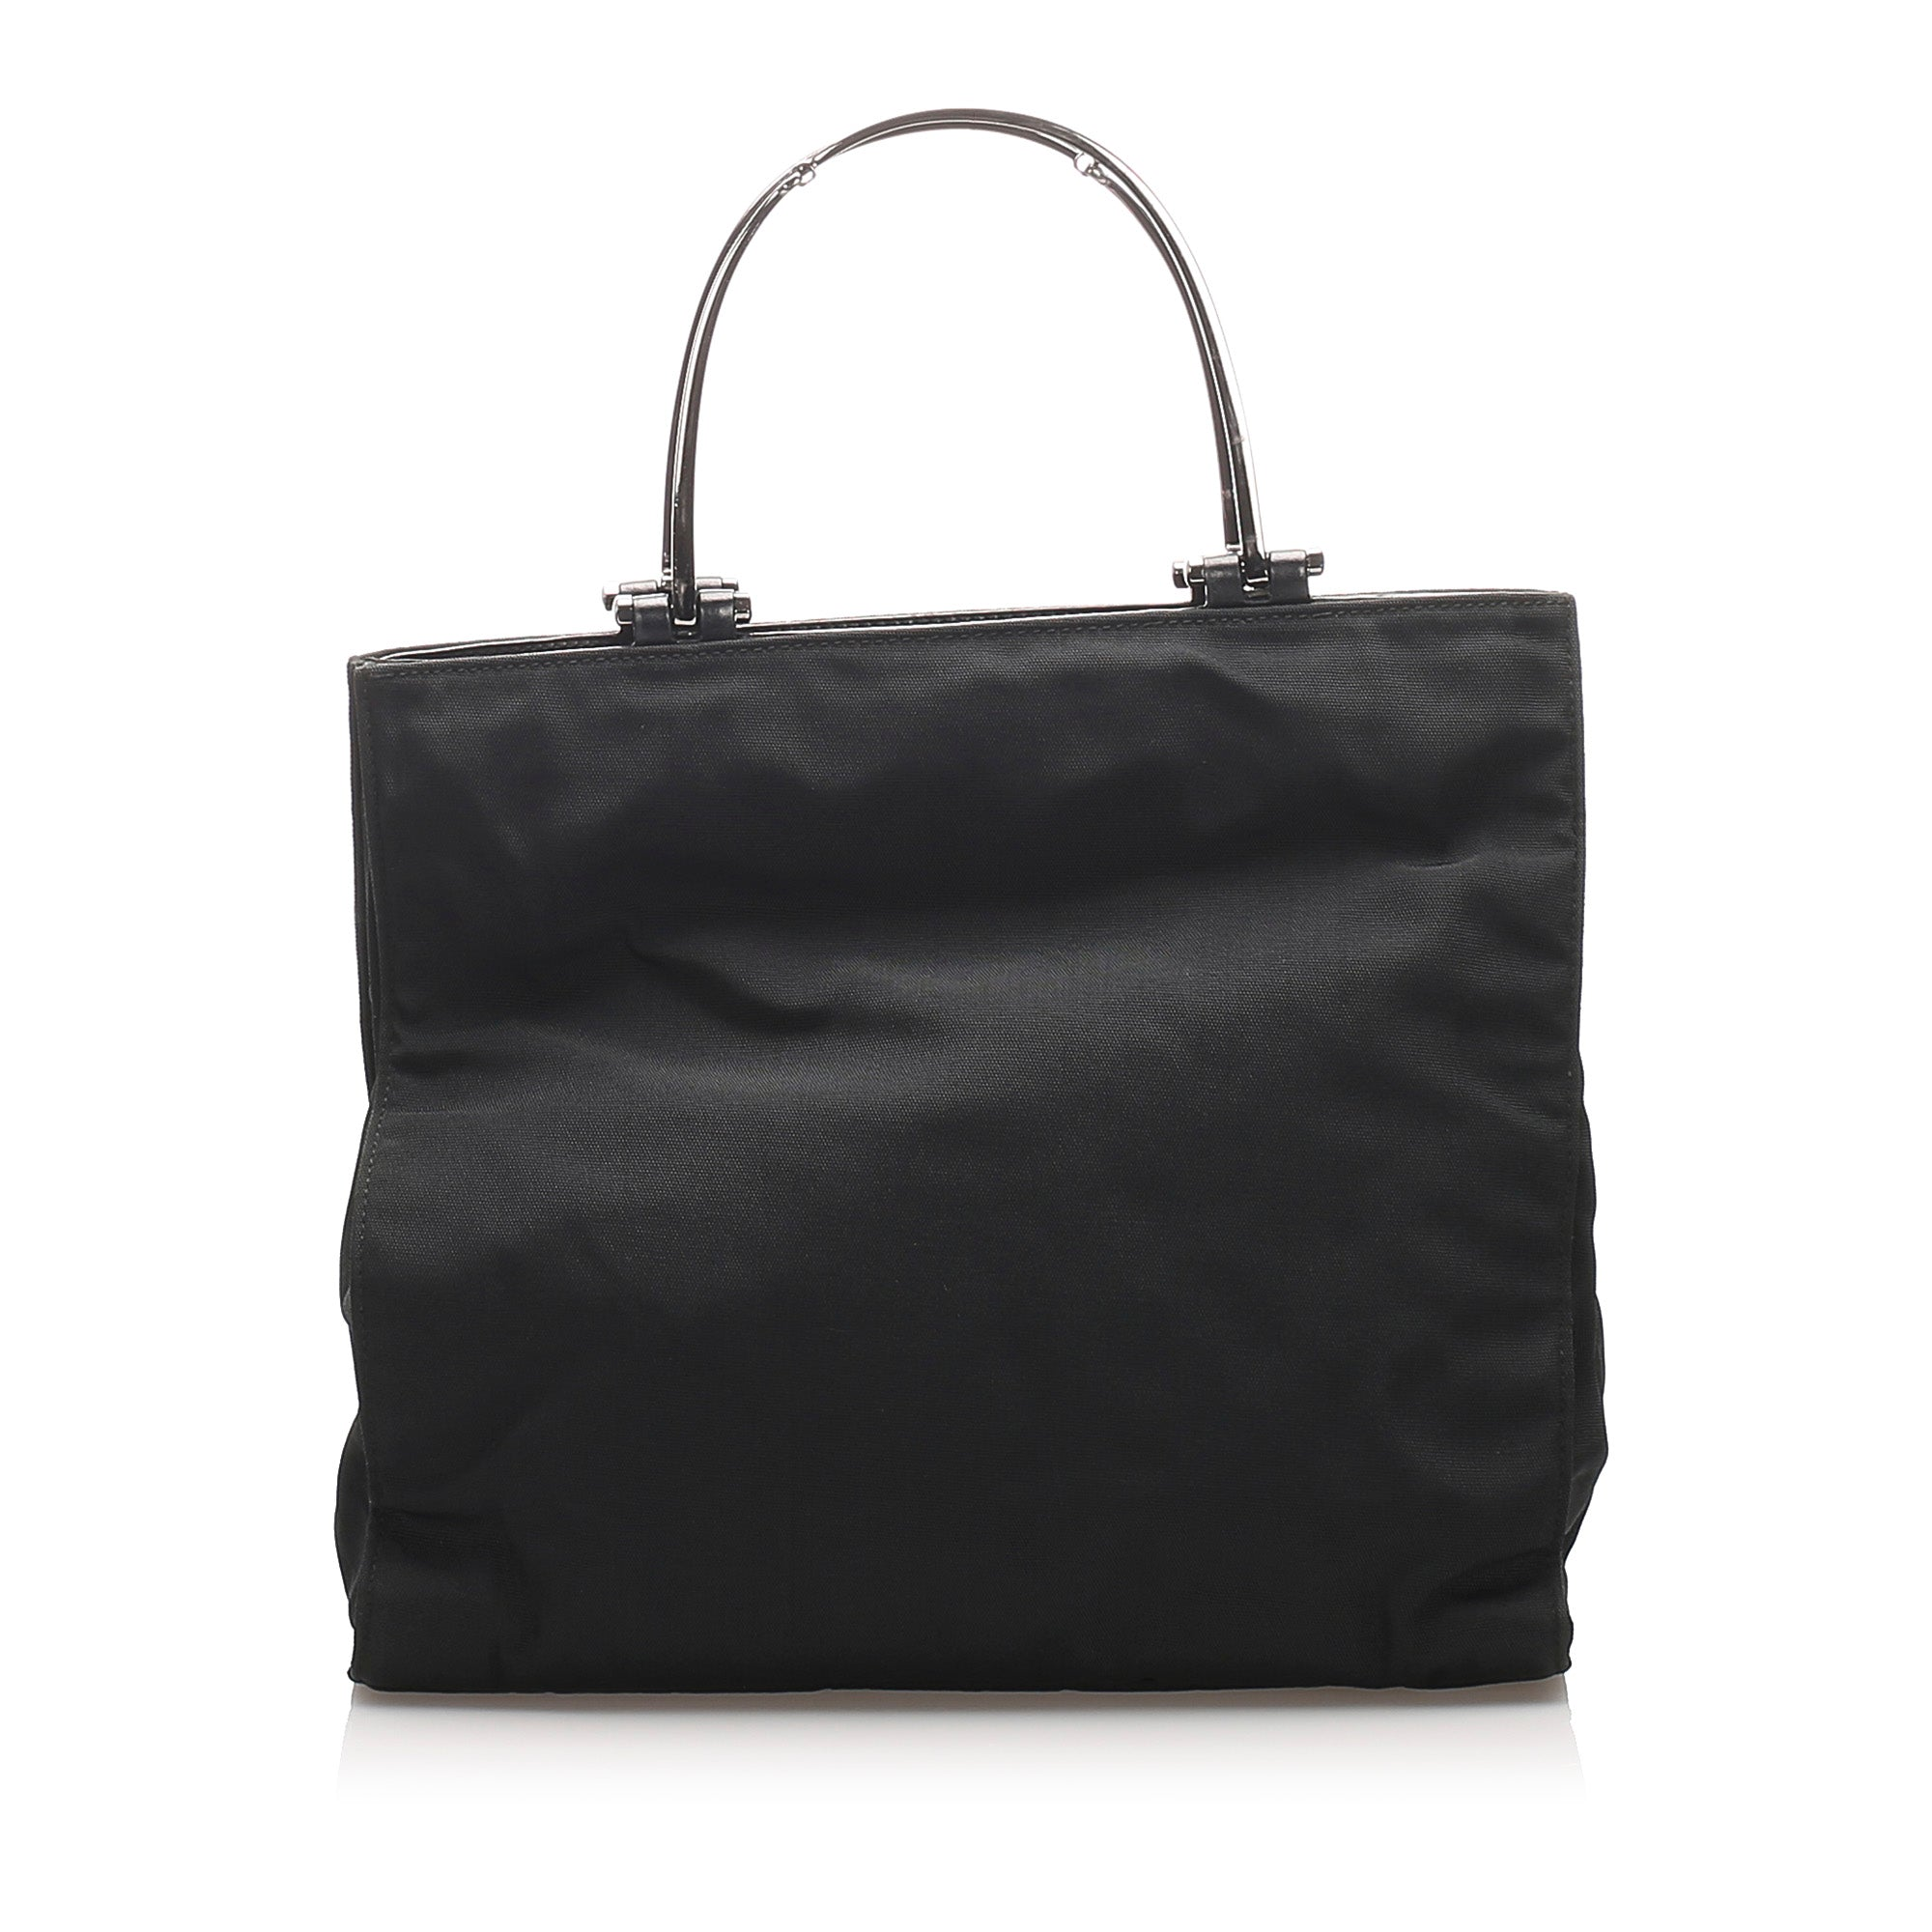 Gucci Black Nylon Handbag